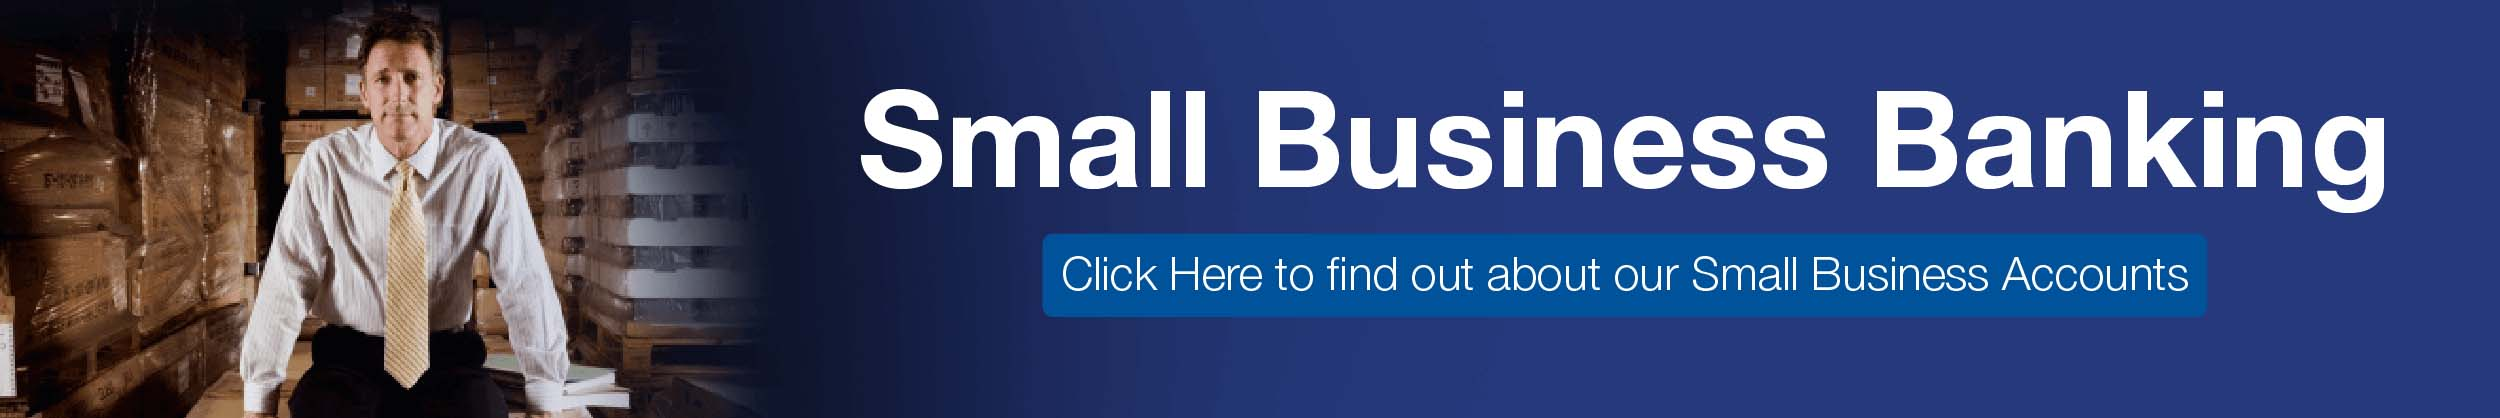 Small Business Banking